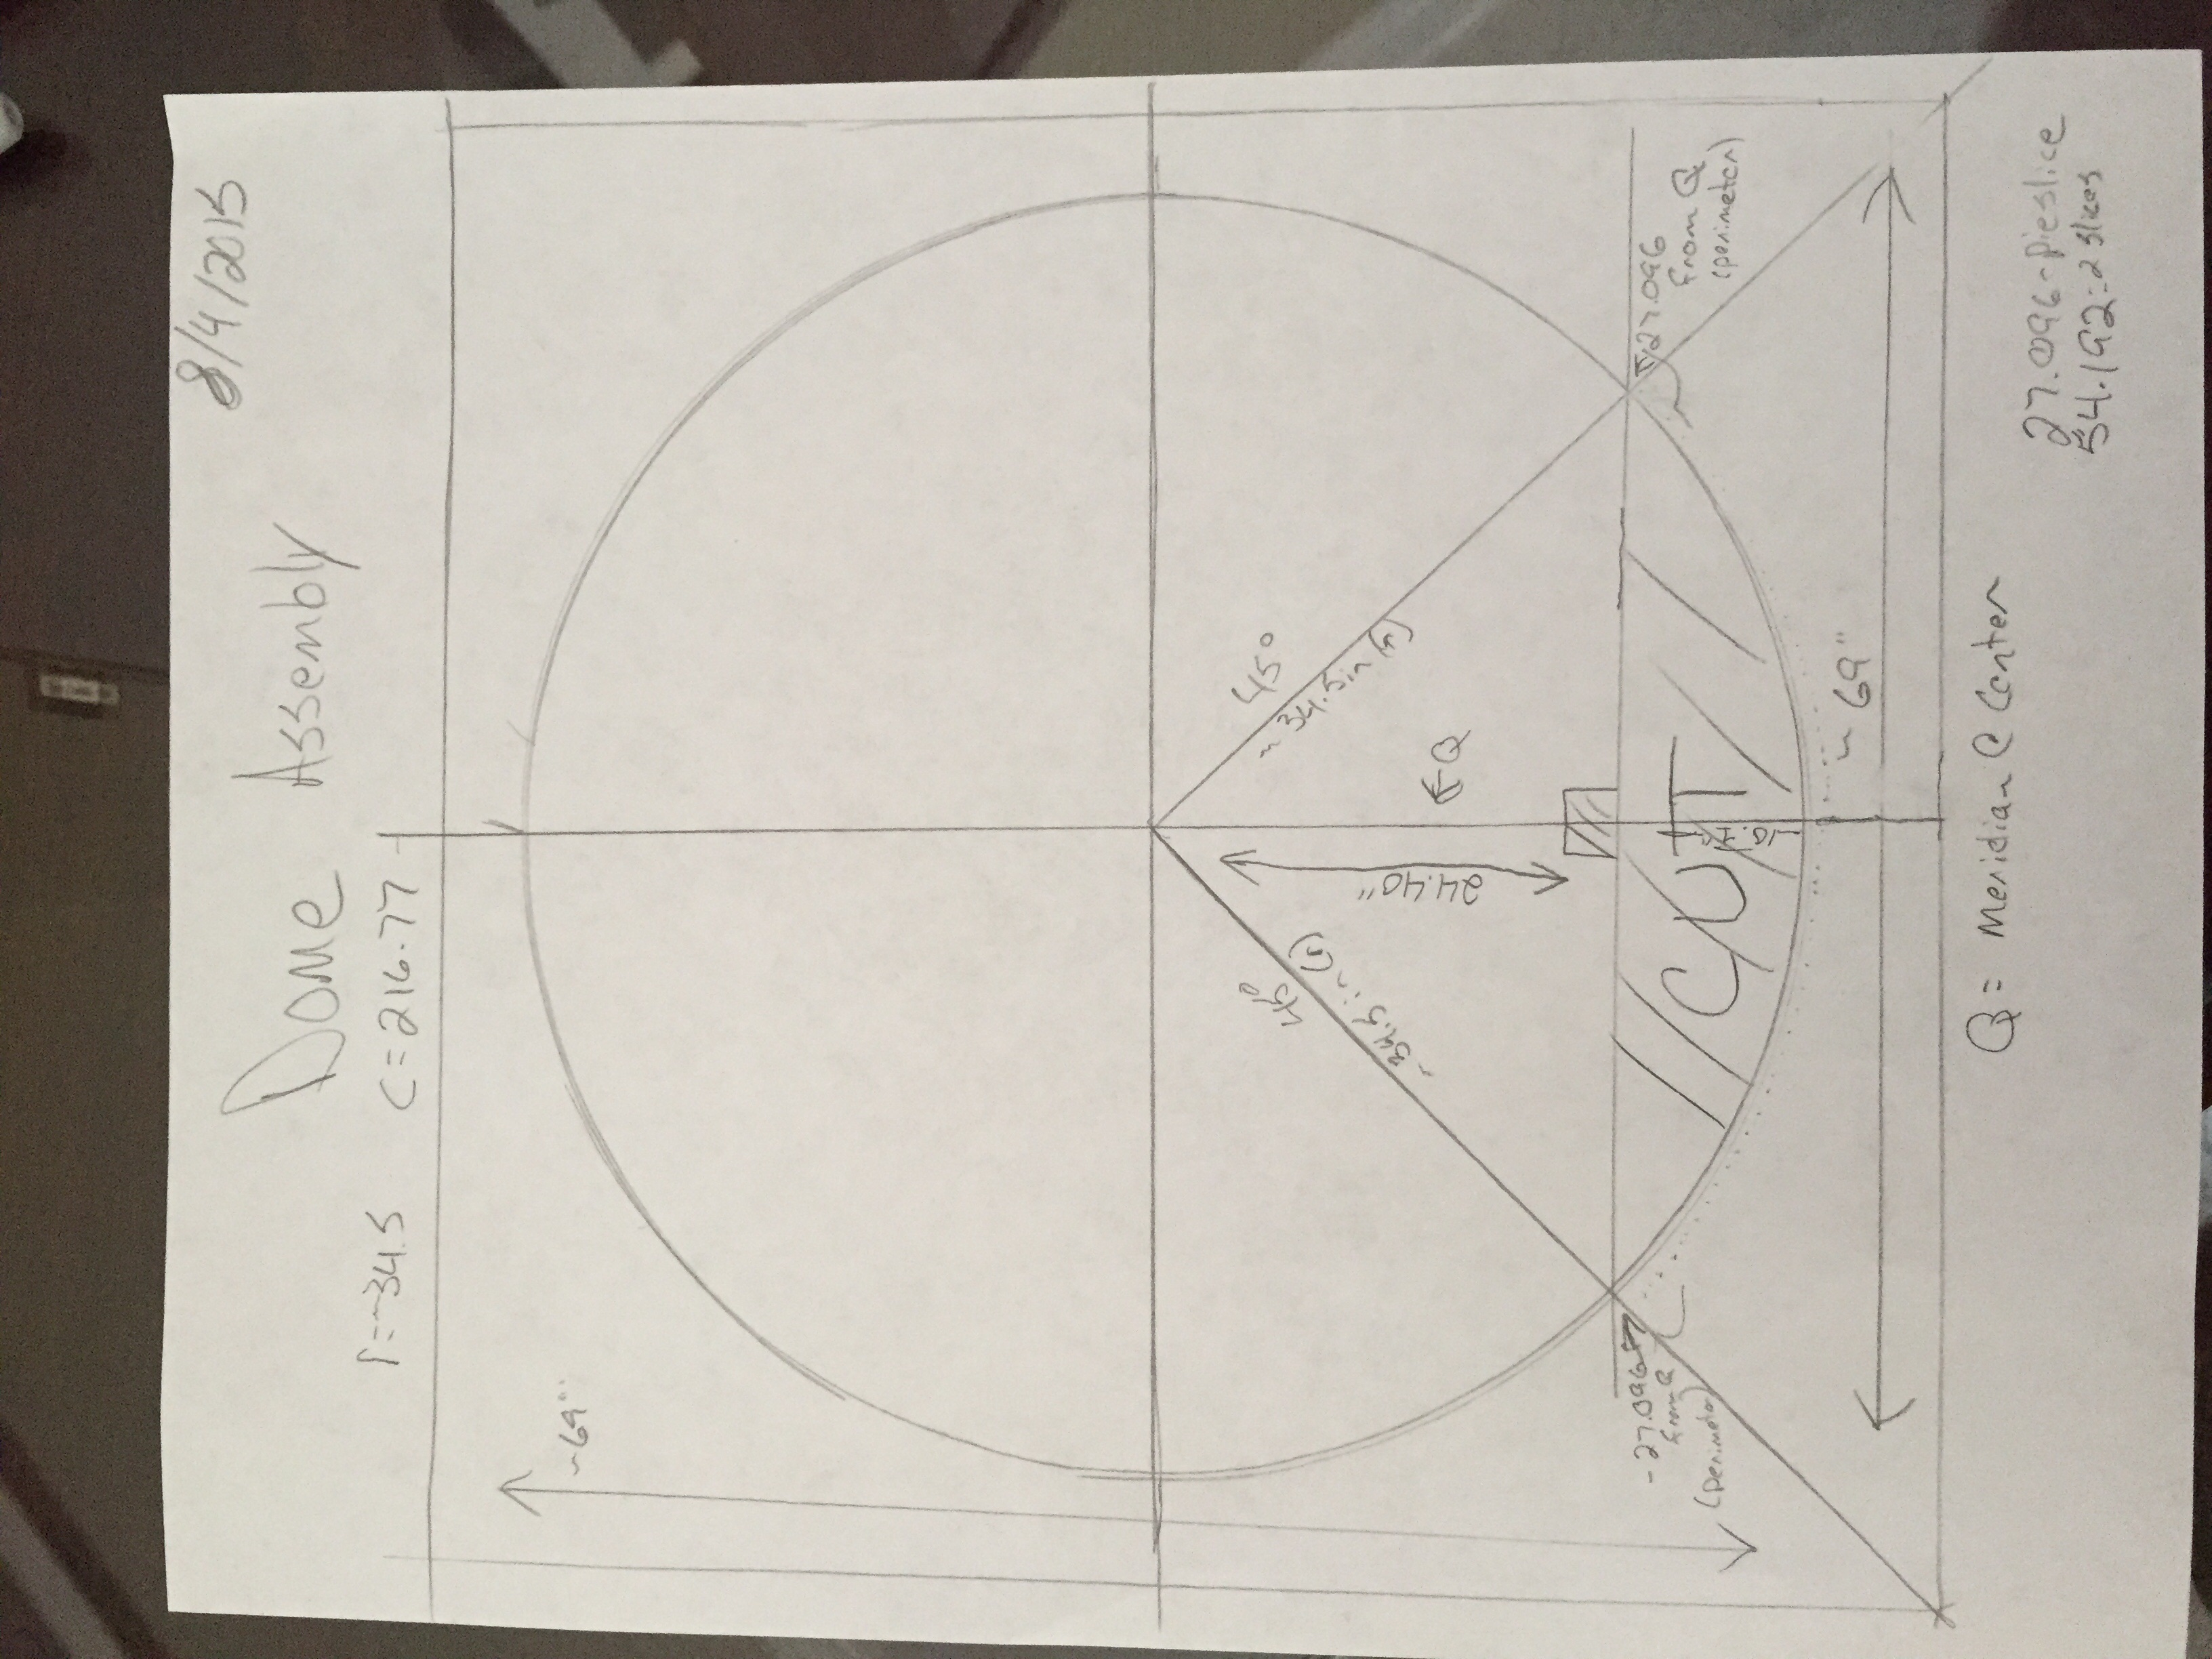 This is the sketch that sent around to a few fab shops explaining the cut-off portion of the truncated-dome.